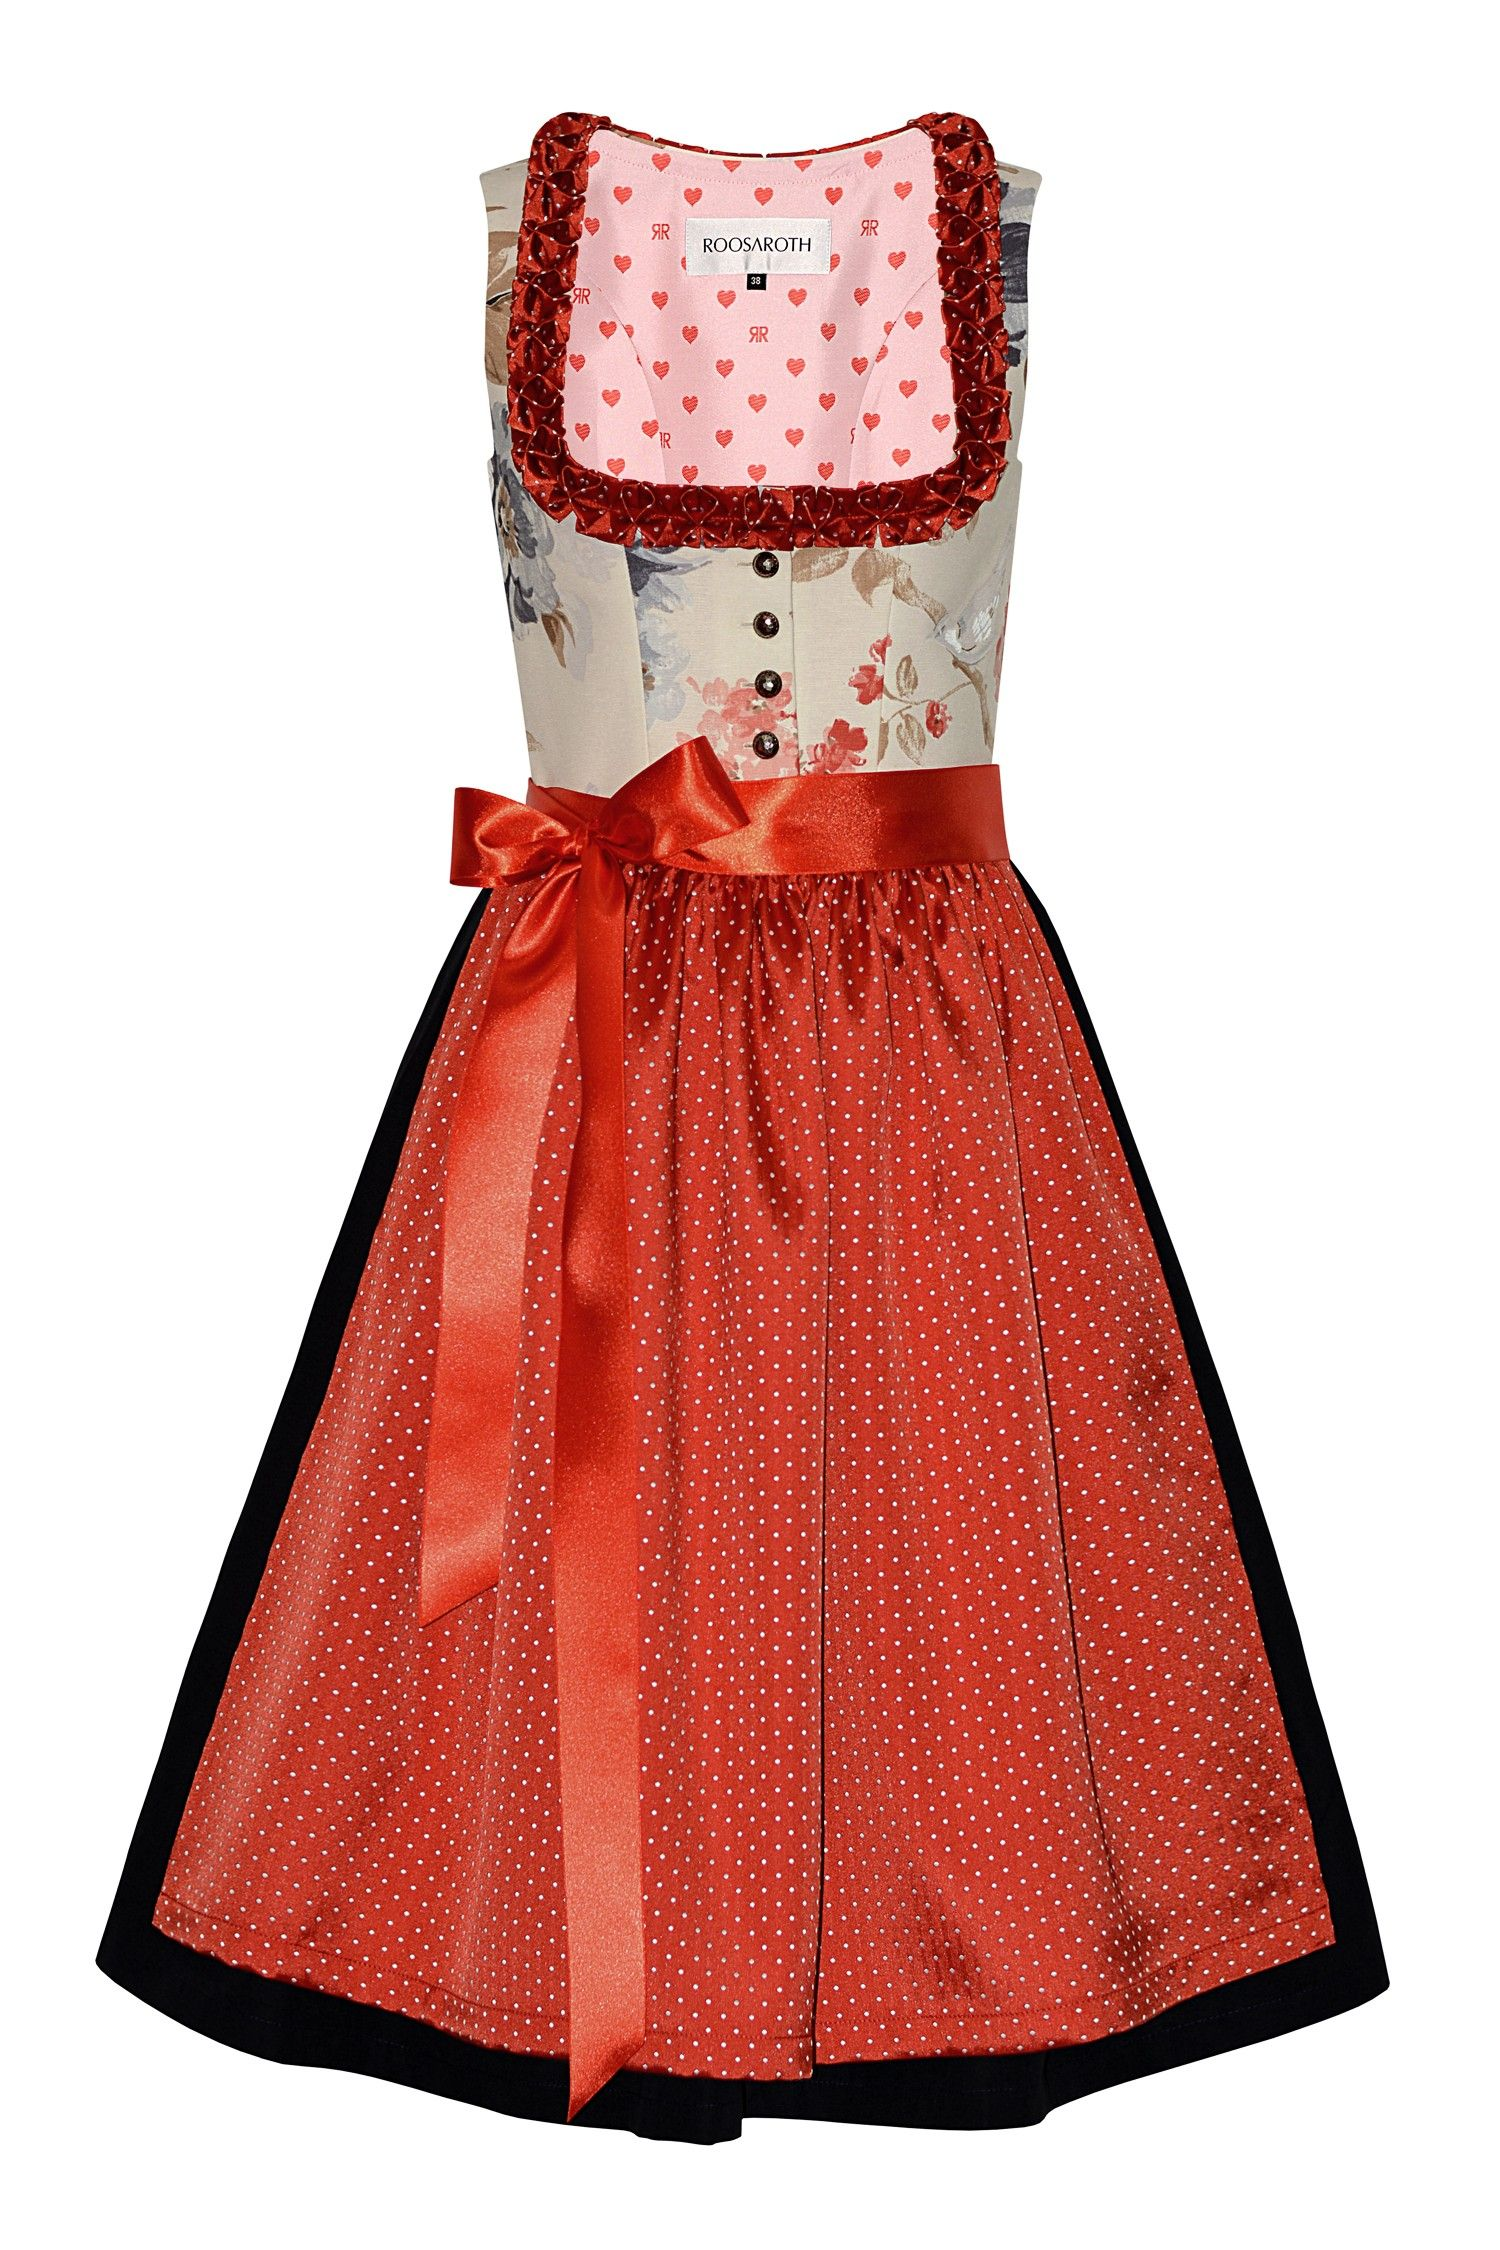 Dirndl PIEPMATZ   Dirndl   Pinterest   Dirndl, Shop sale and Shopping 5b72b6a9cf